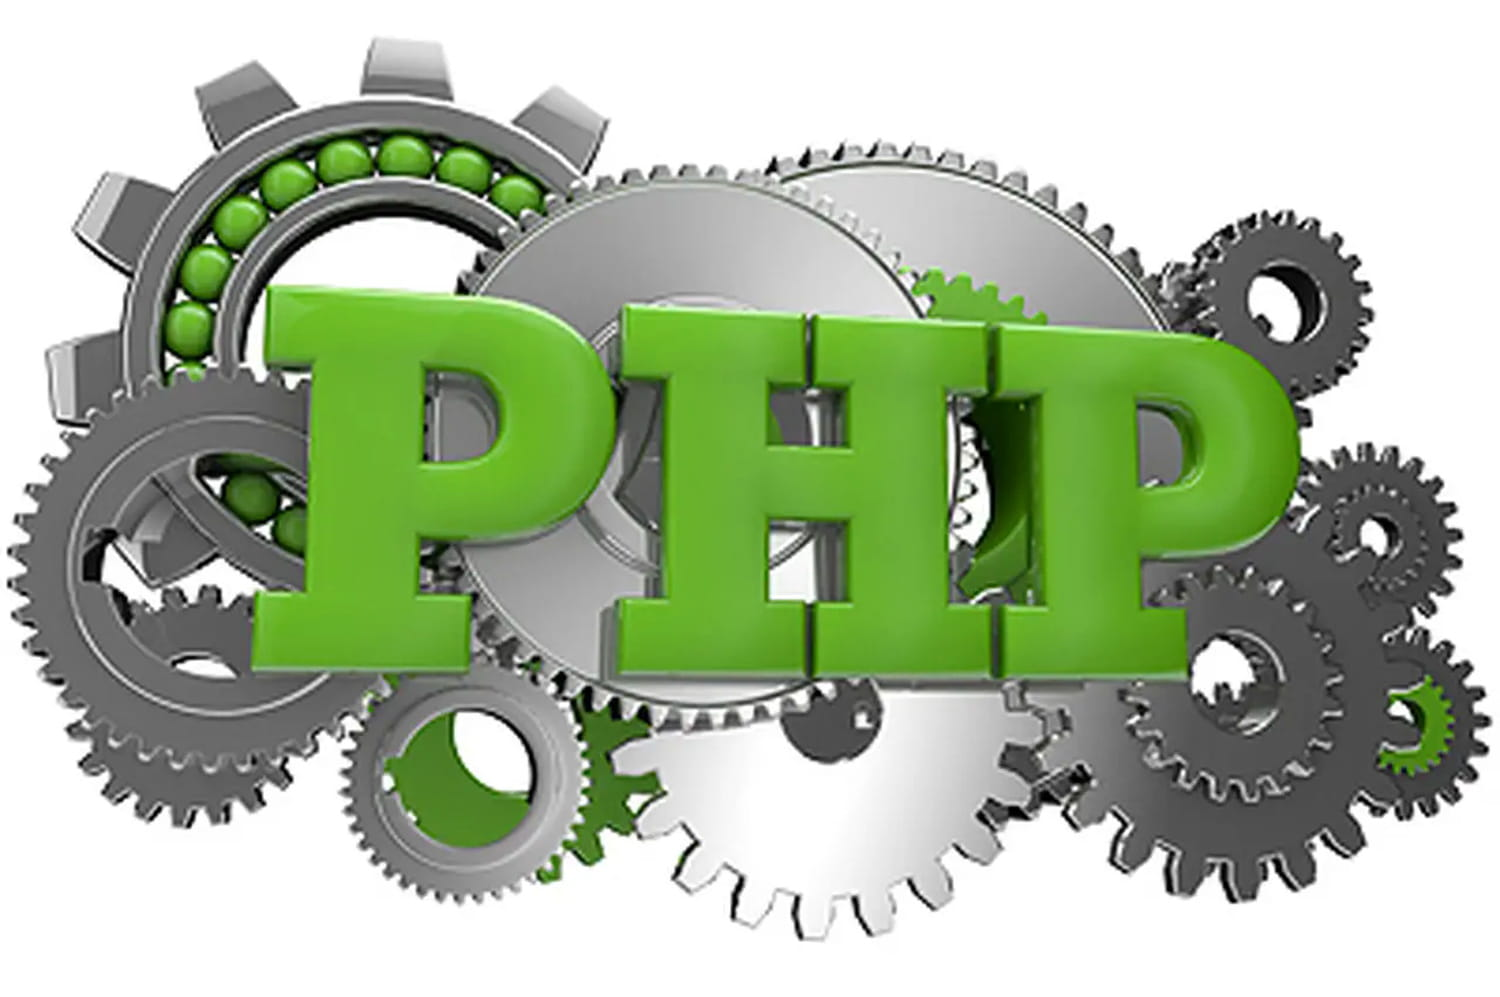 PHP: résoudre l'erreur count(): Parameter must be an array or an object that implements Countable